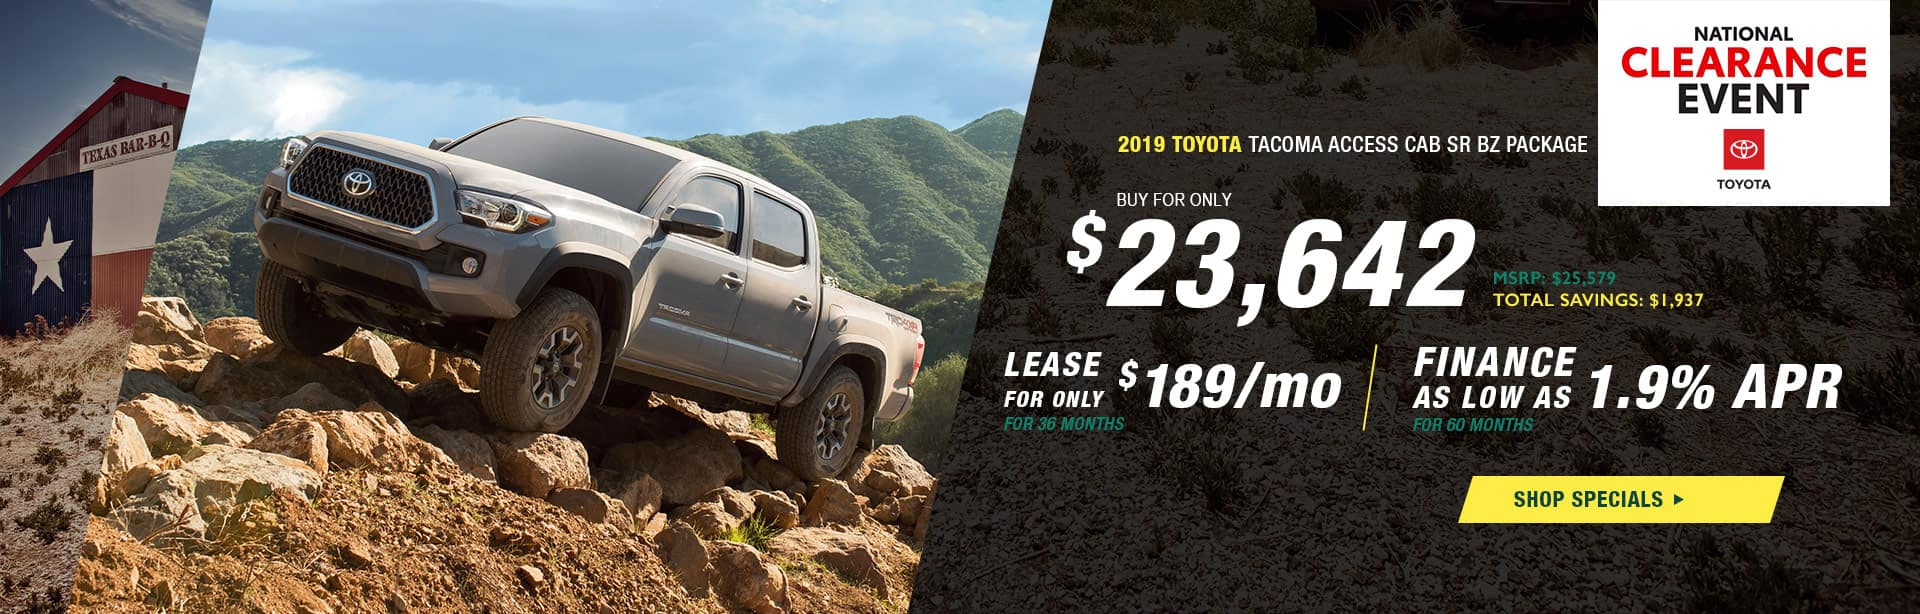 2019 Toyota Tacoma Access Cab SR BZ Package